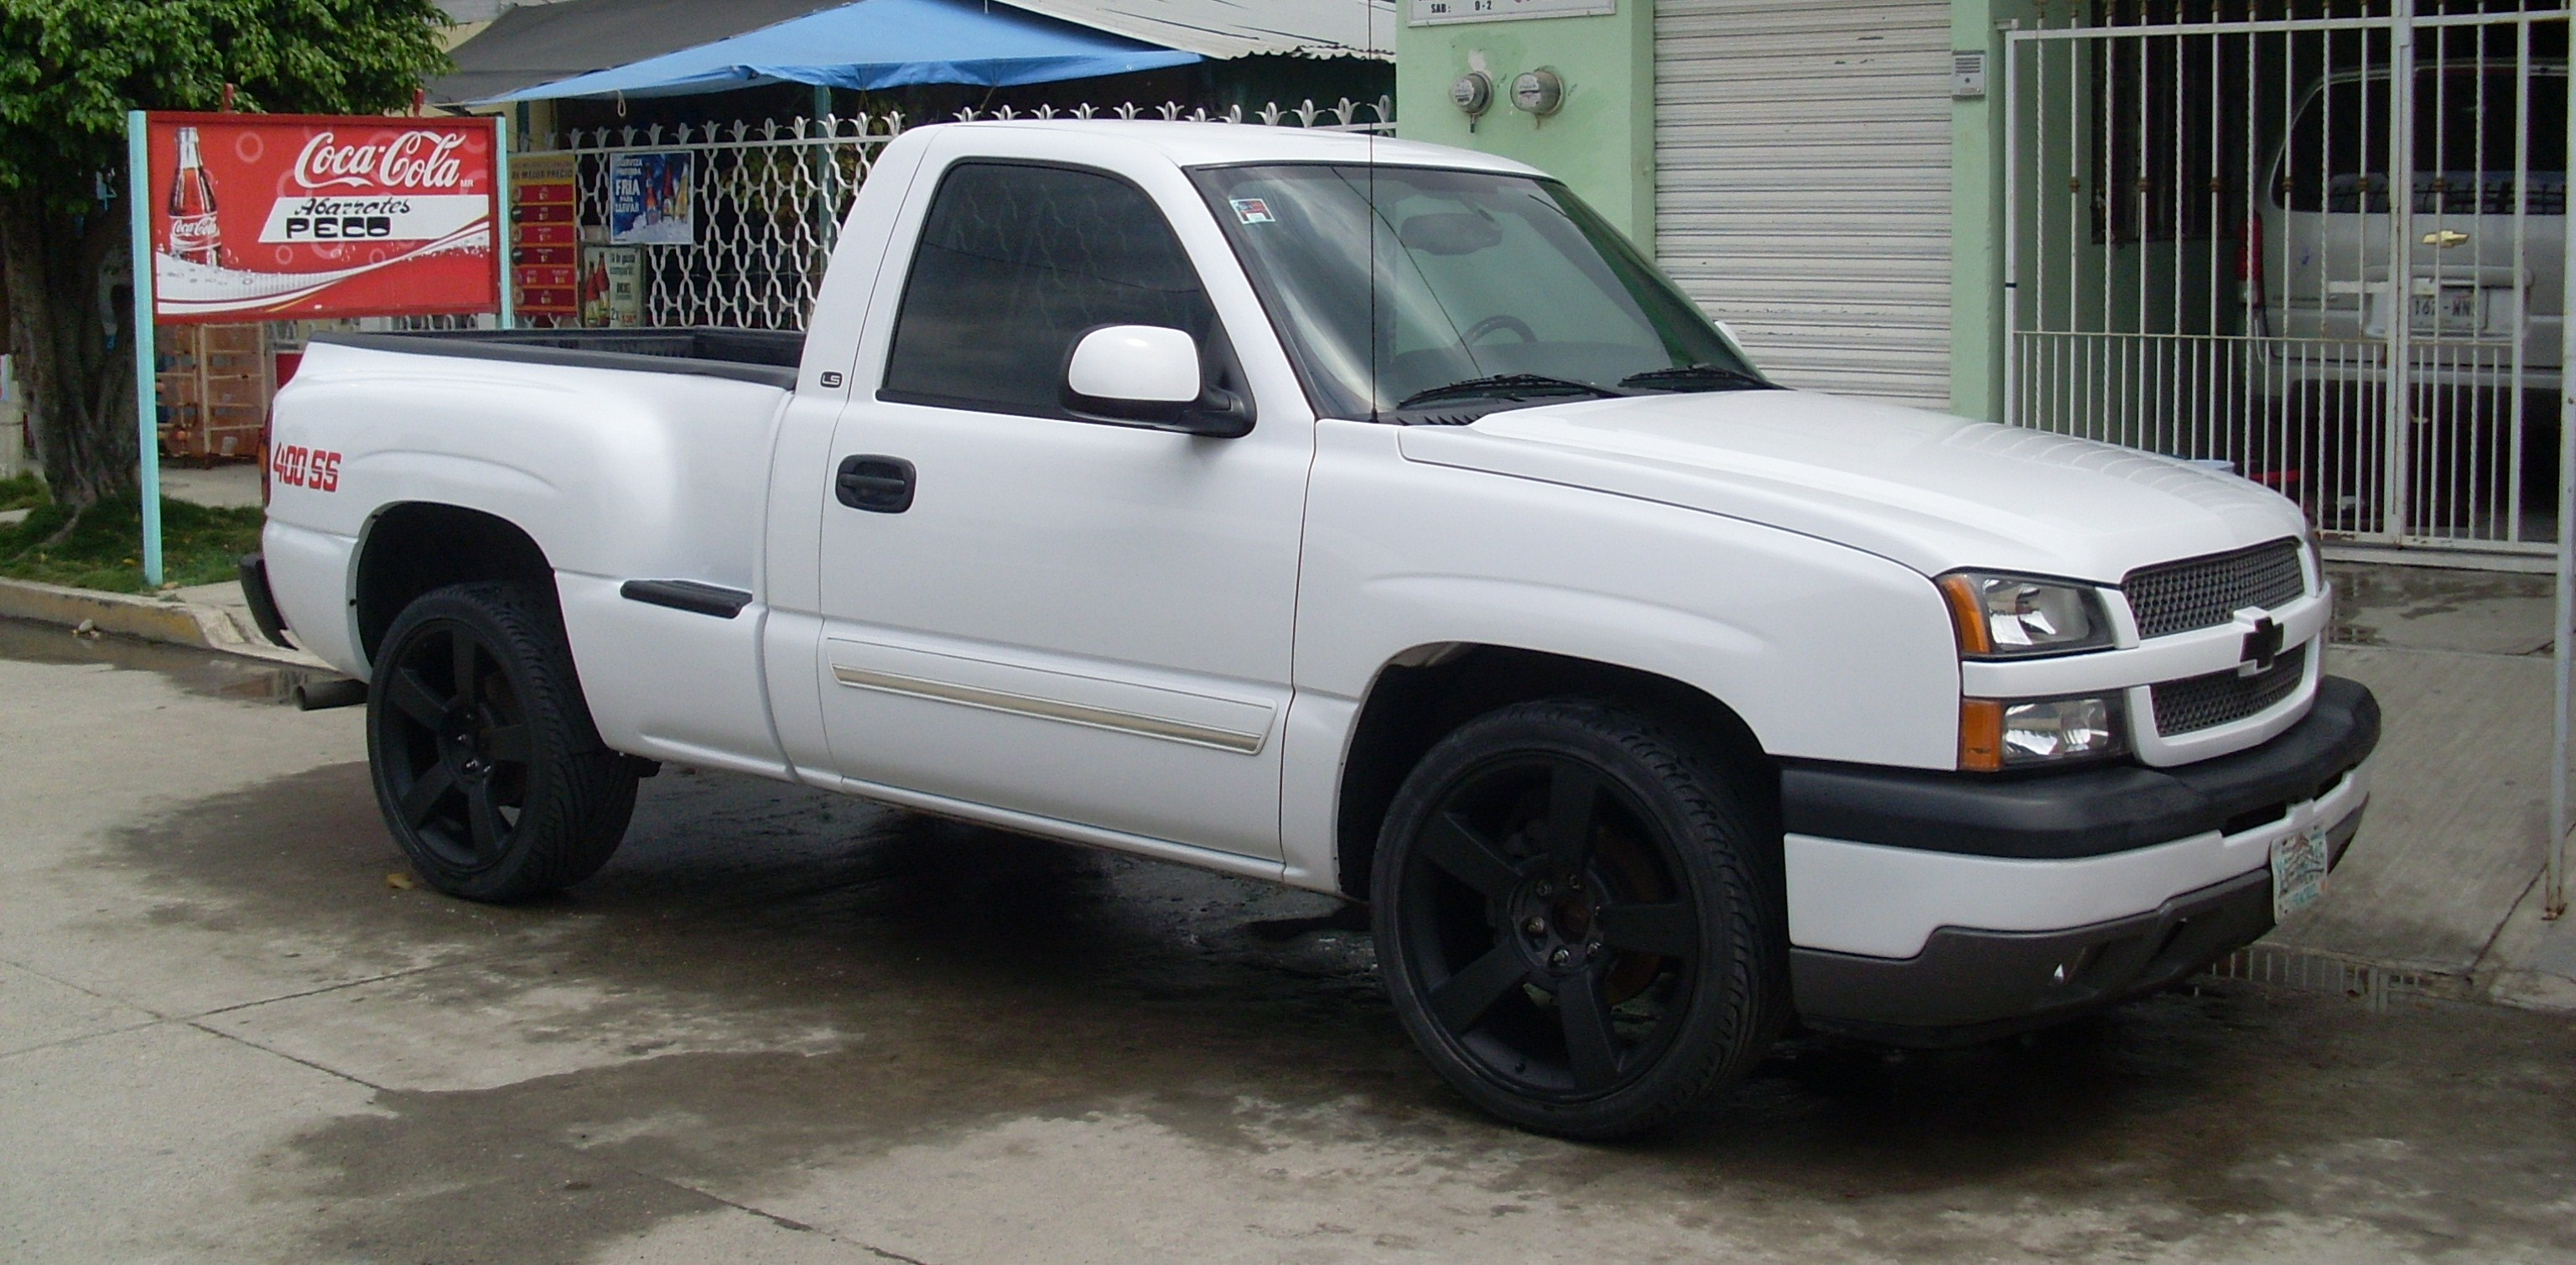 400ssgarces 2005 Chevrolet Silverado 1500 Regular Cab 14427438